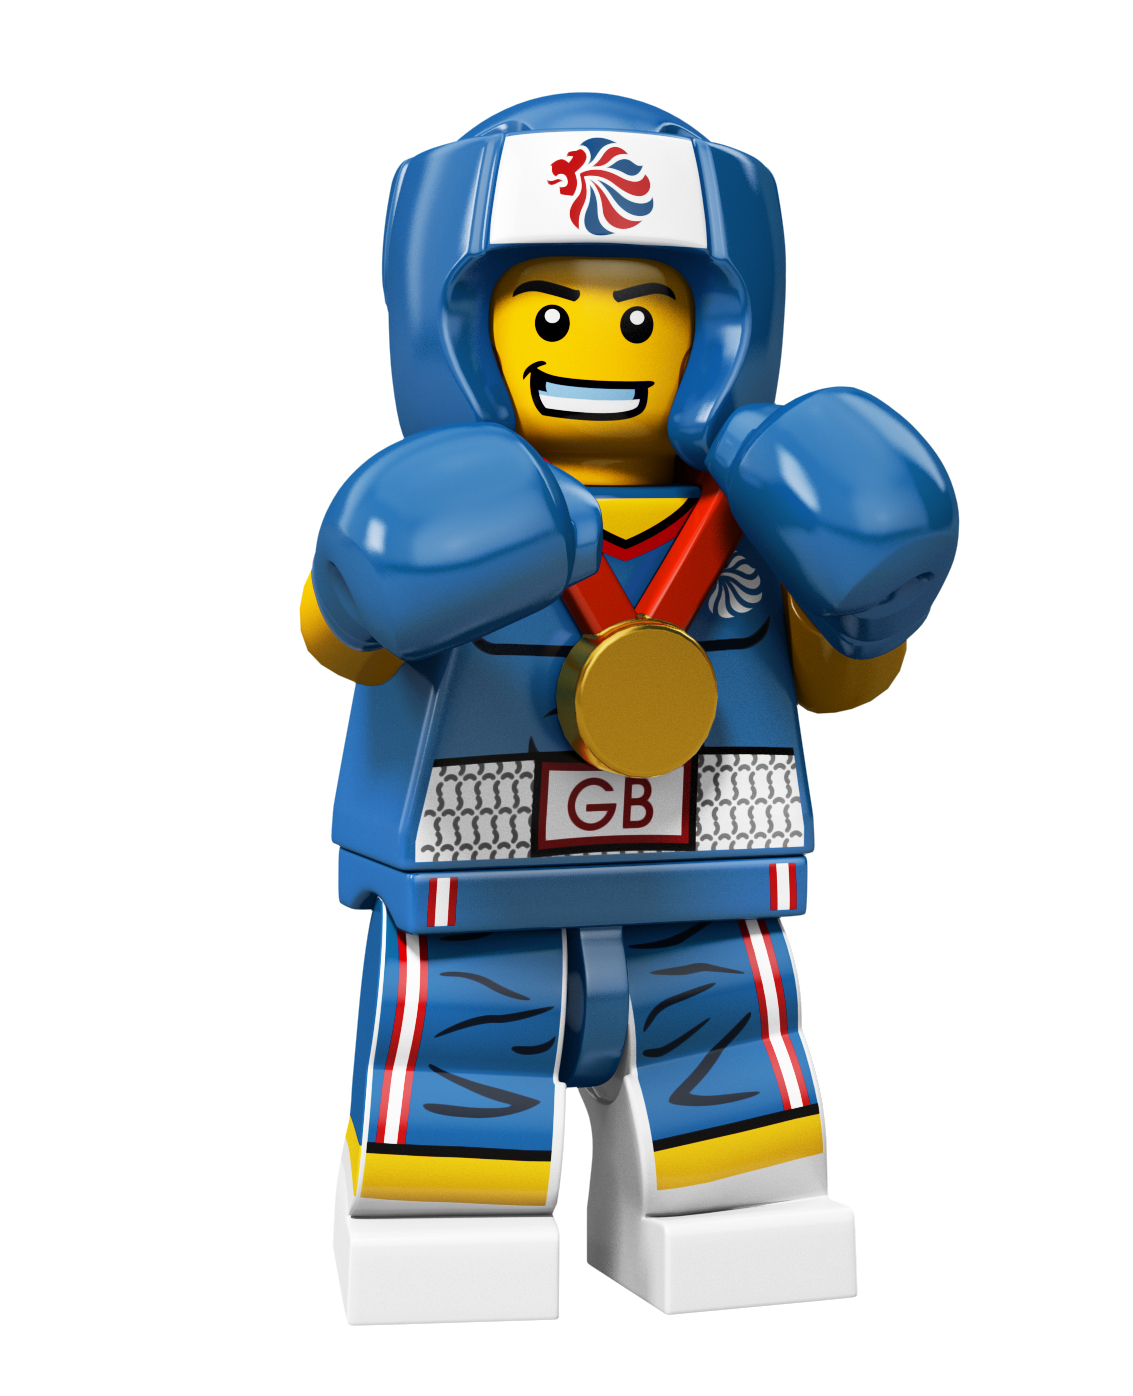 the olympics blog official announcement and high res images of lego 39 s team gb minifigures. Black Bedroom Furniture Sets. Home Design Ideas